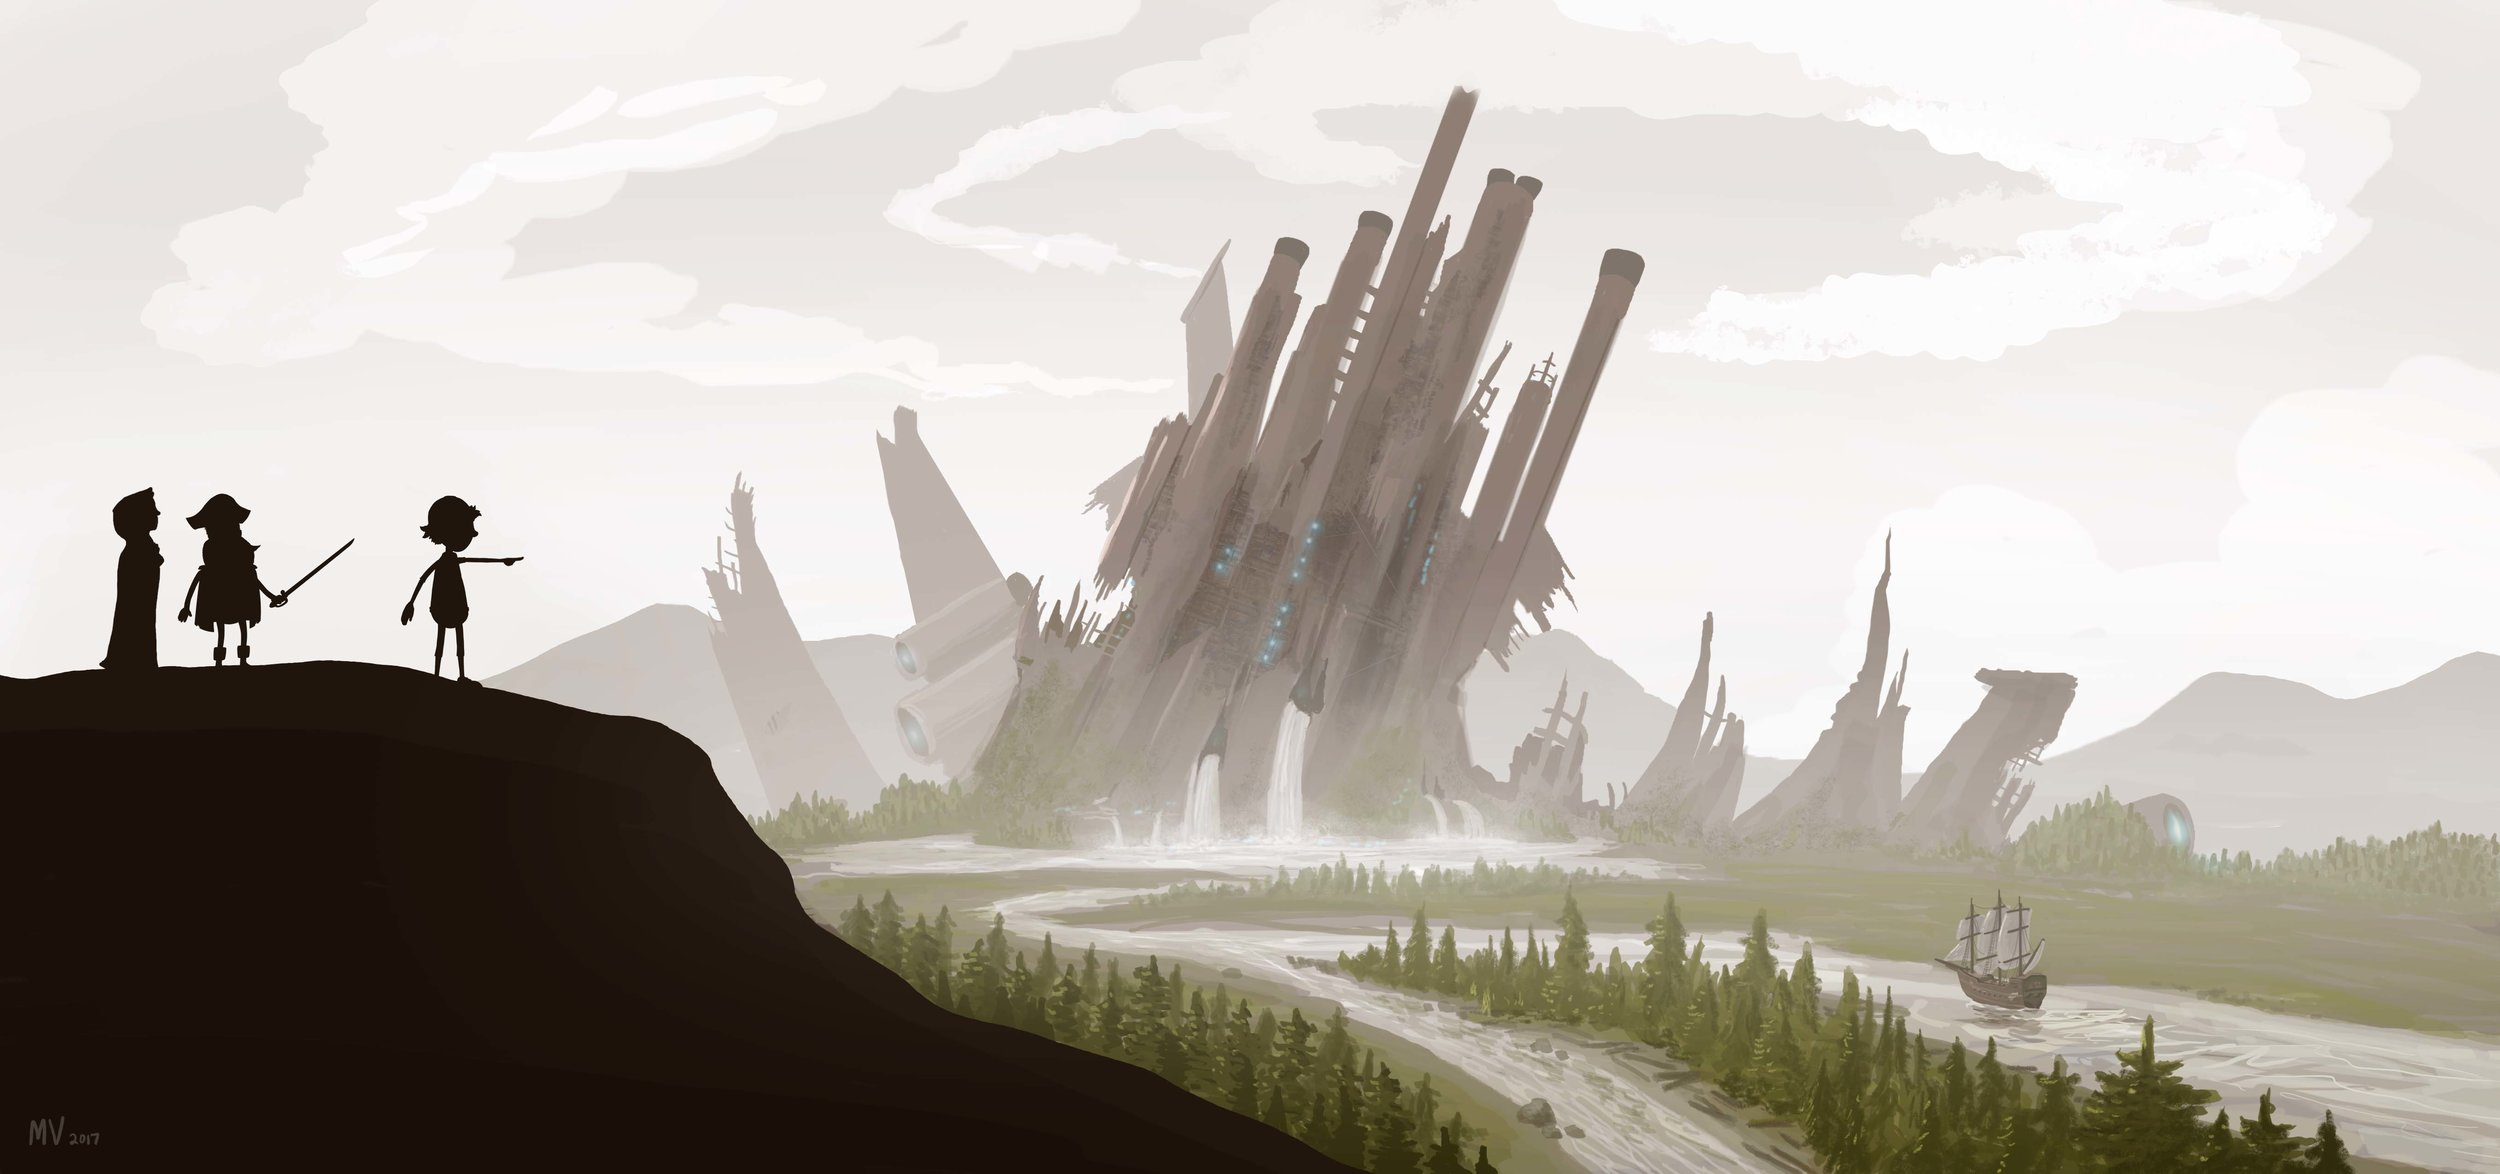 Digital Painting - this is a piece of concept art for a personal animation project that a friend and I are working on.